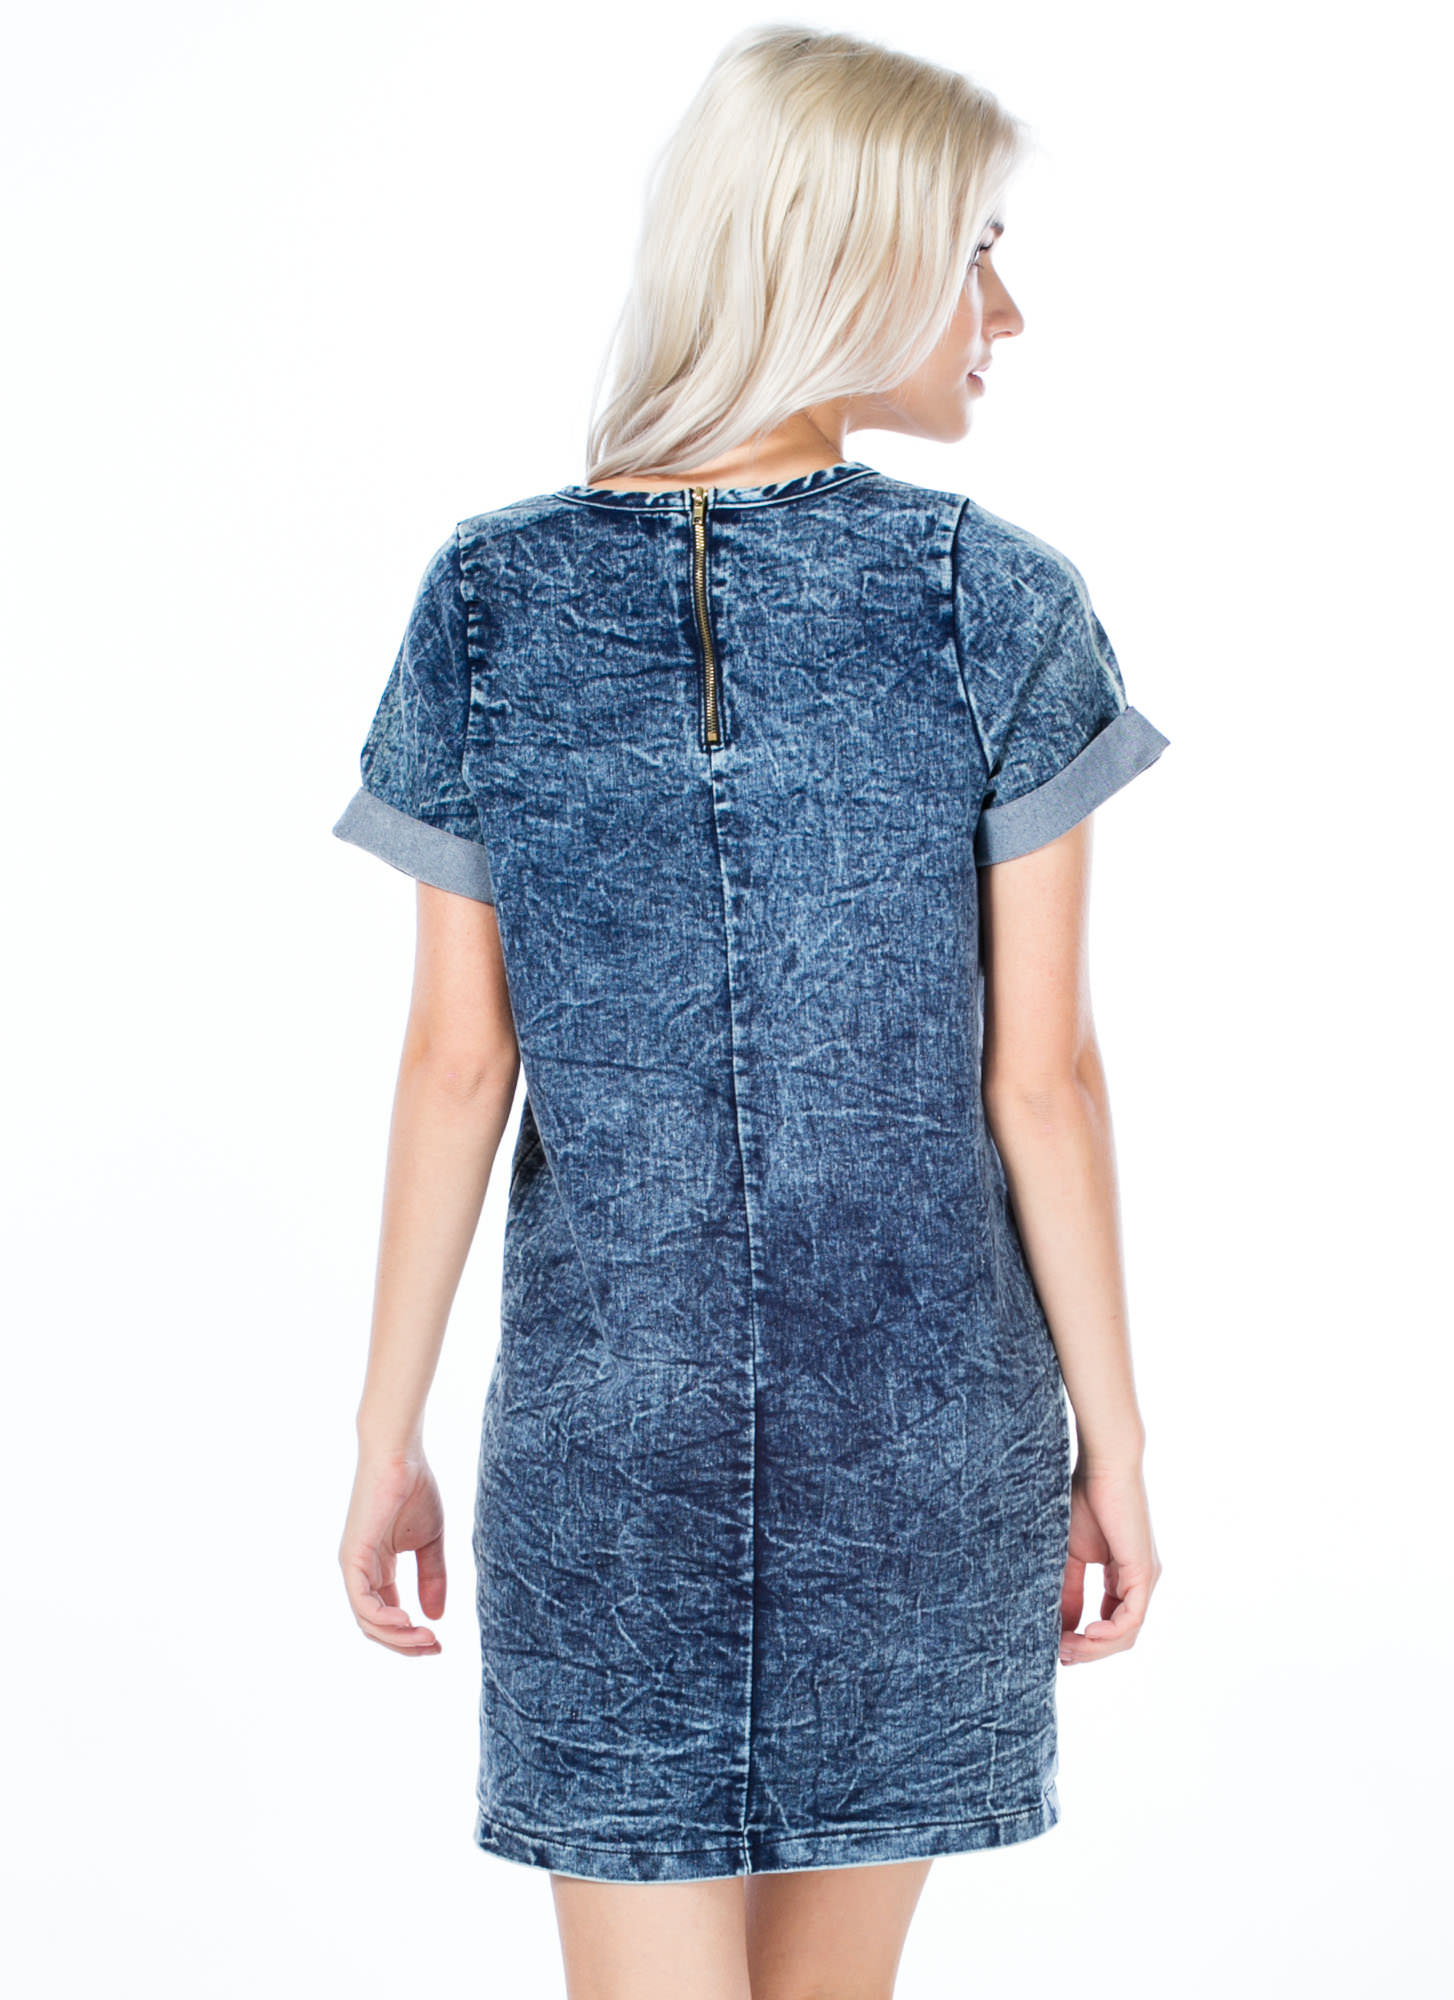 Cuffed Denim Shift Dress DKBLUE